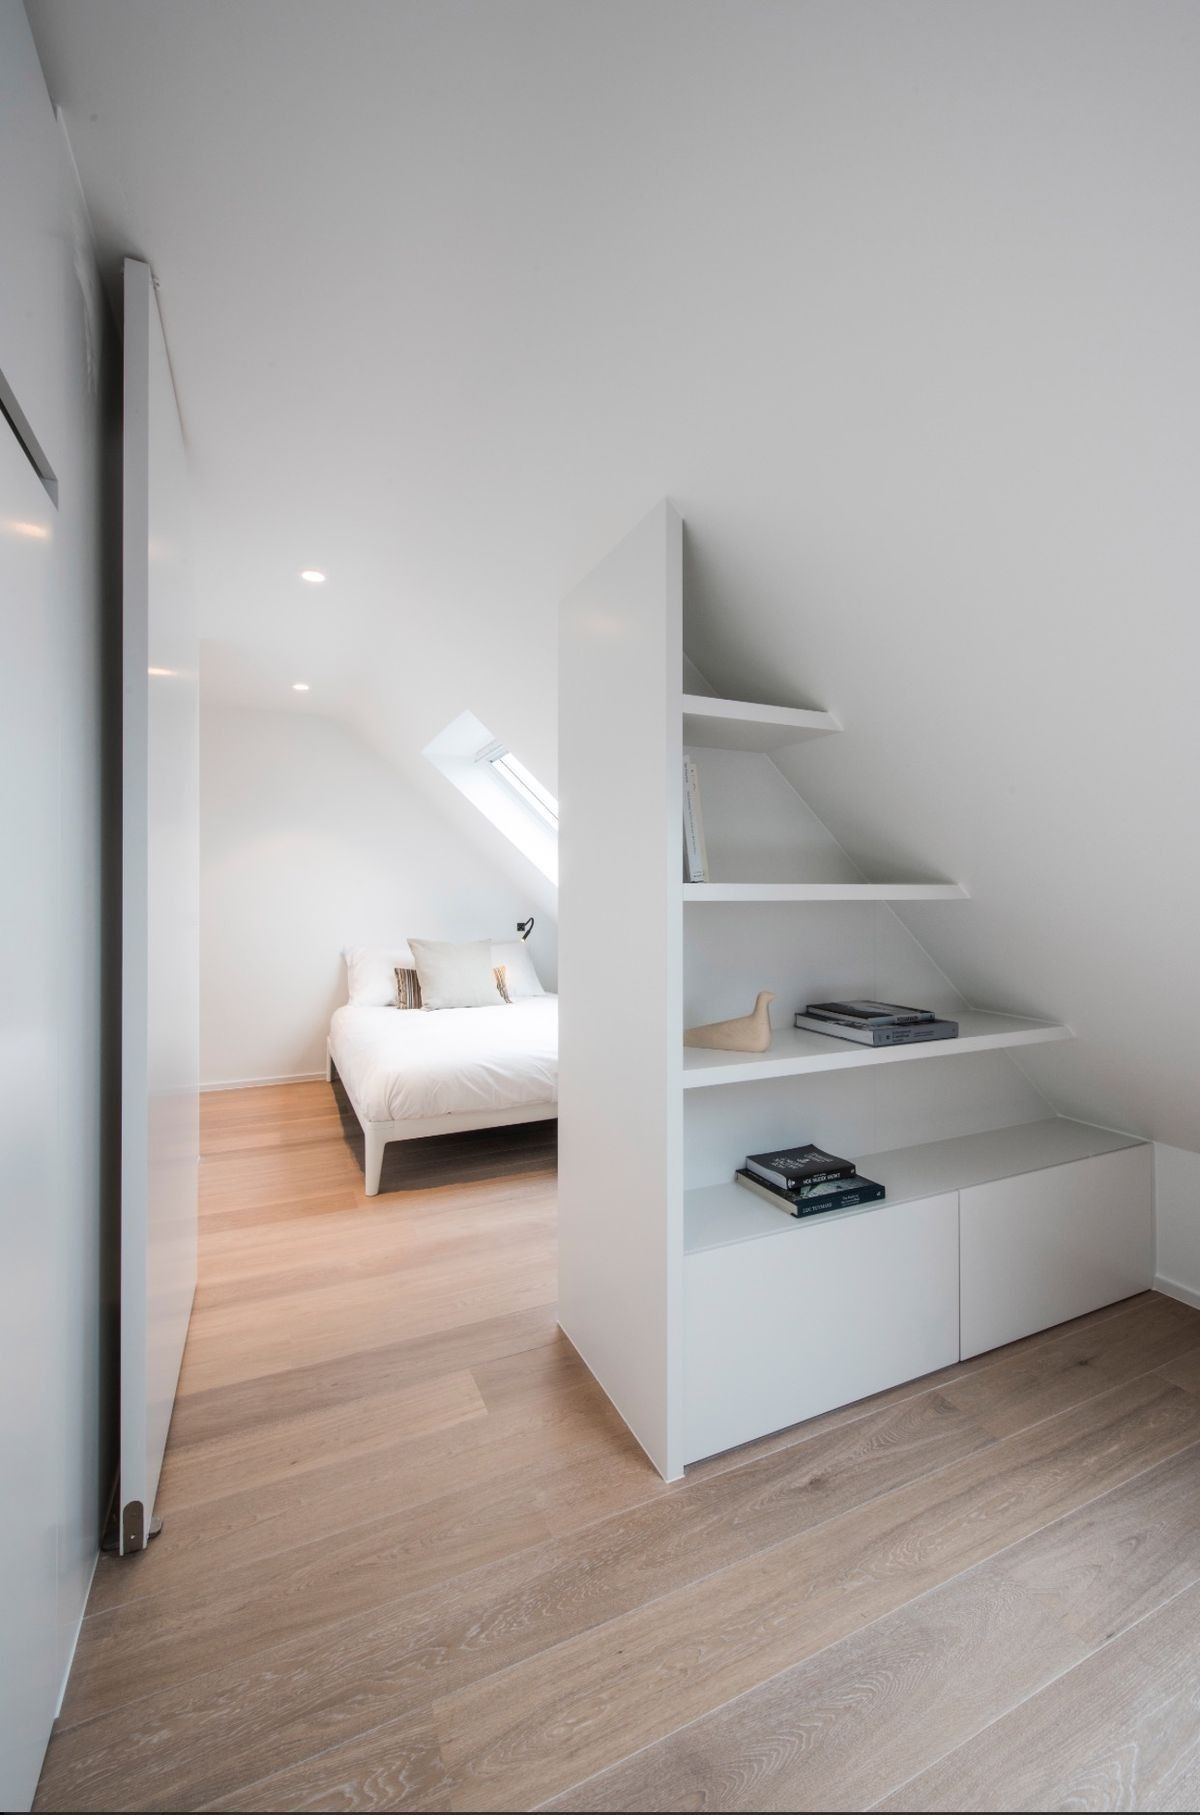 Attic Room Ideas | Attic bedroom small, Attic bedroom ...